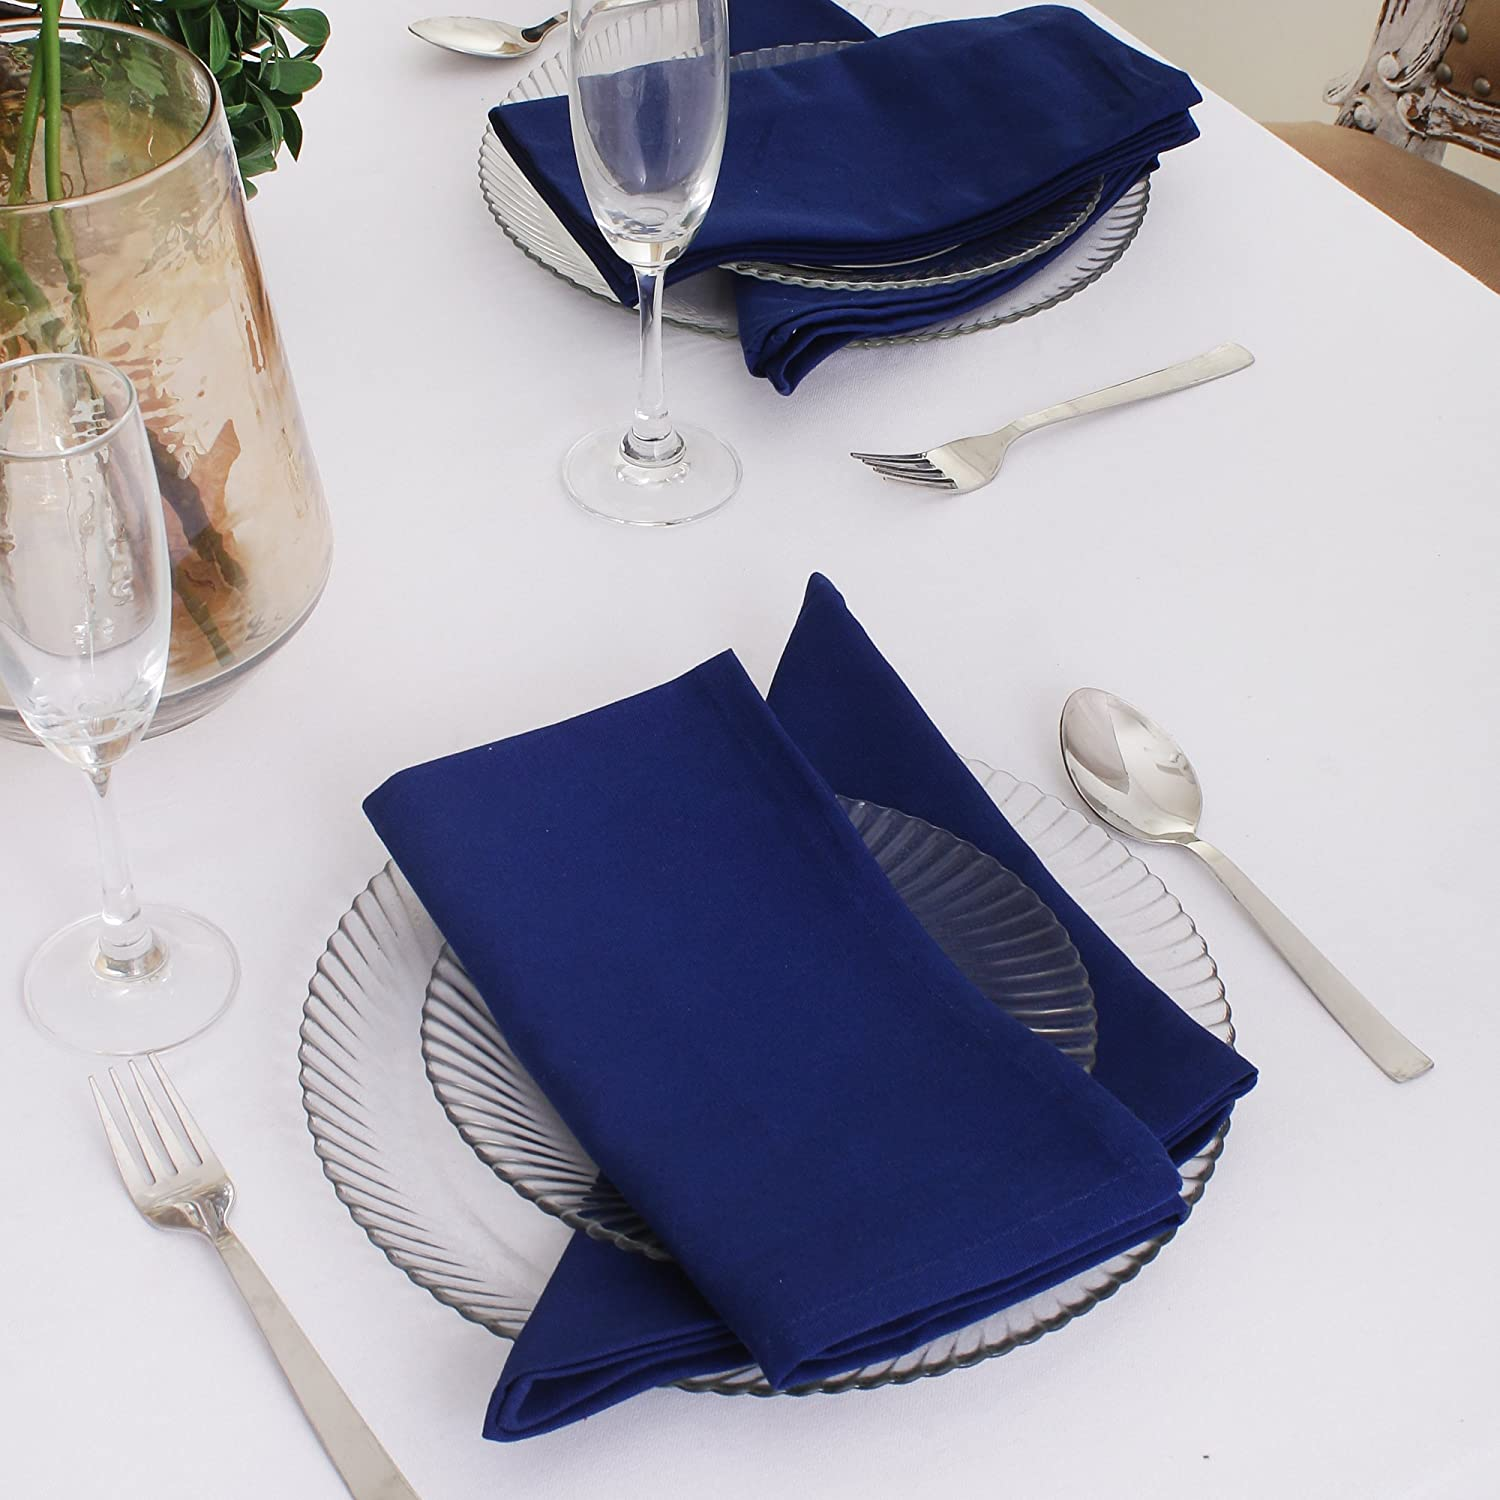 Quick Dry 20 x 20 Inches Hemmed with Mitered Corners Lint Free Set of 12 Over Sized Embroidery and Print DG Collections Cotton Dinner Napkins Grey